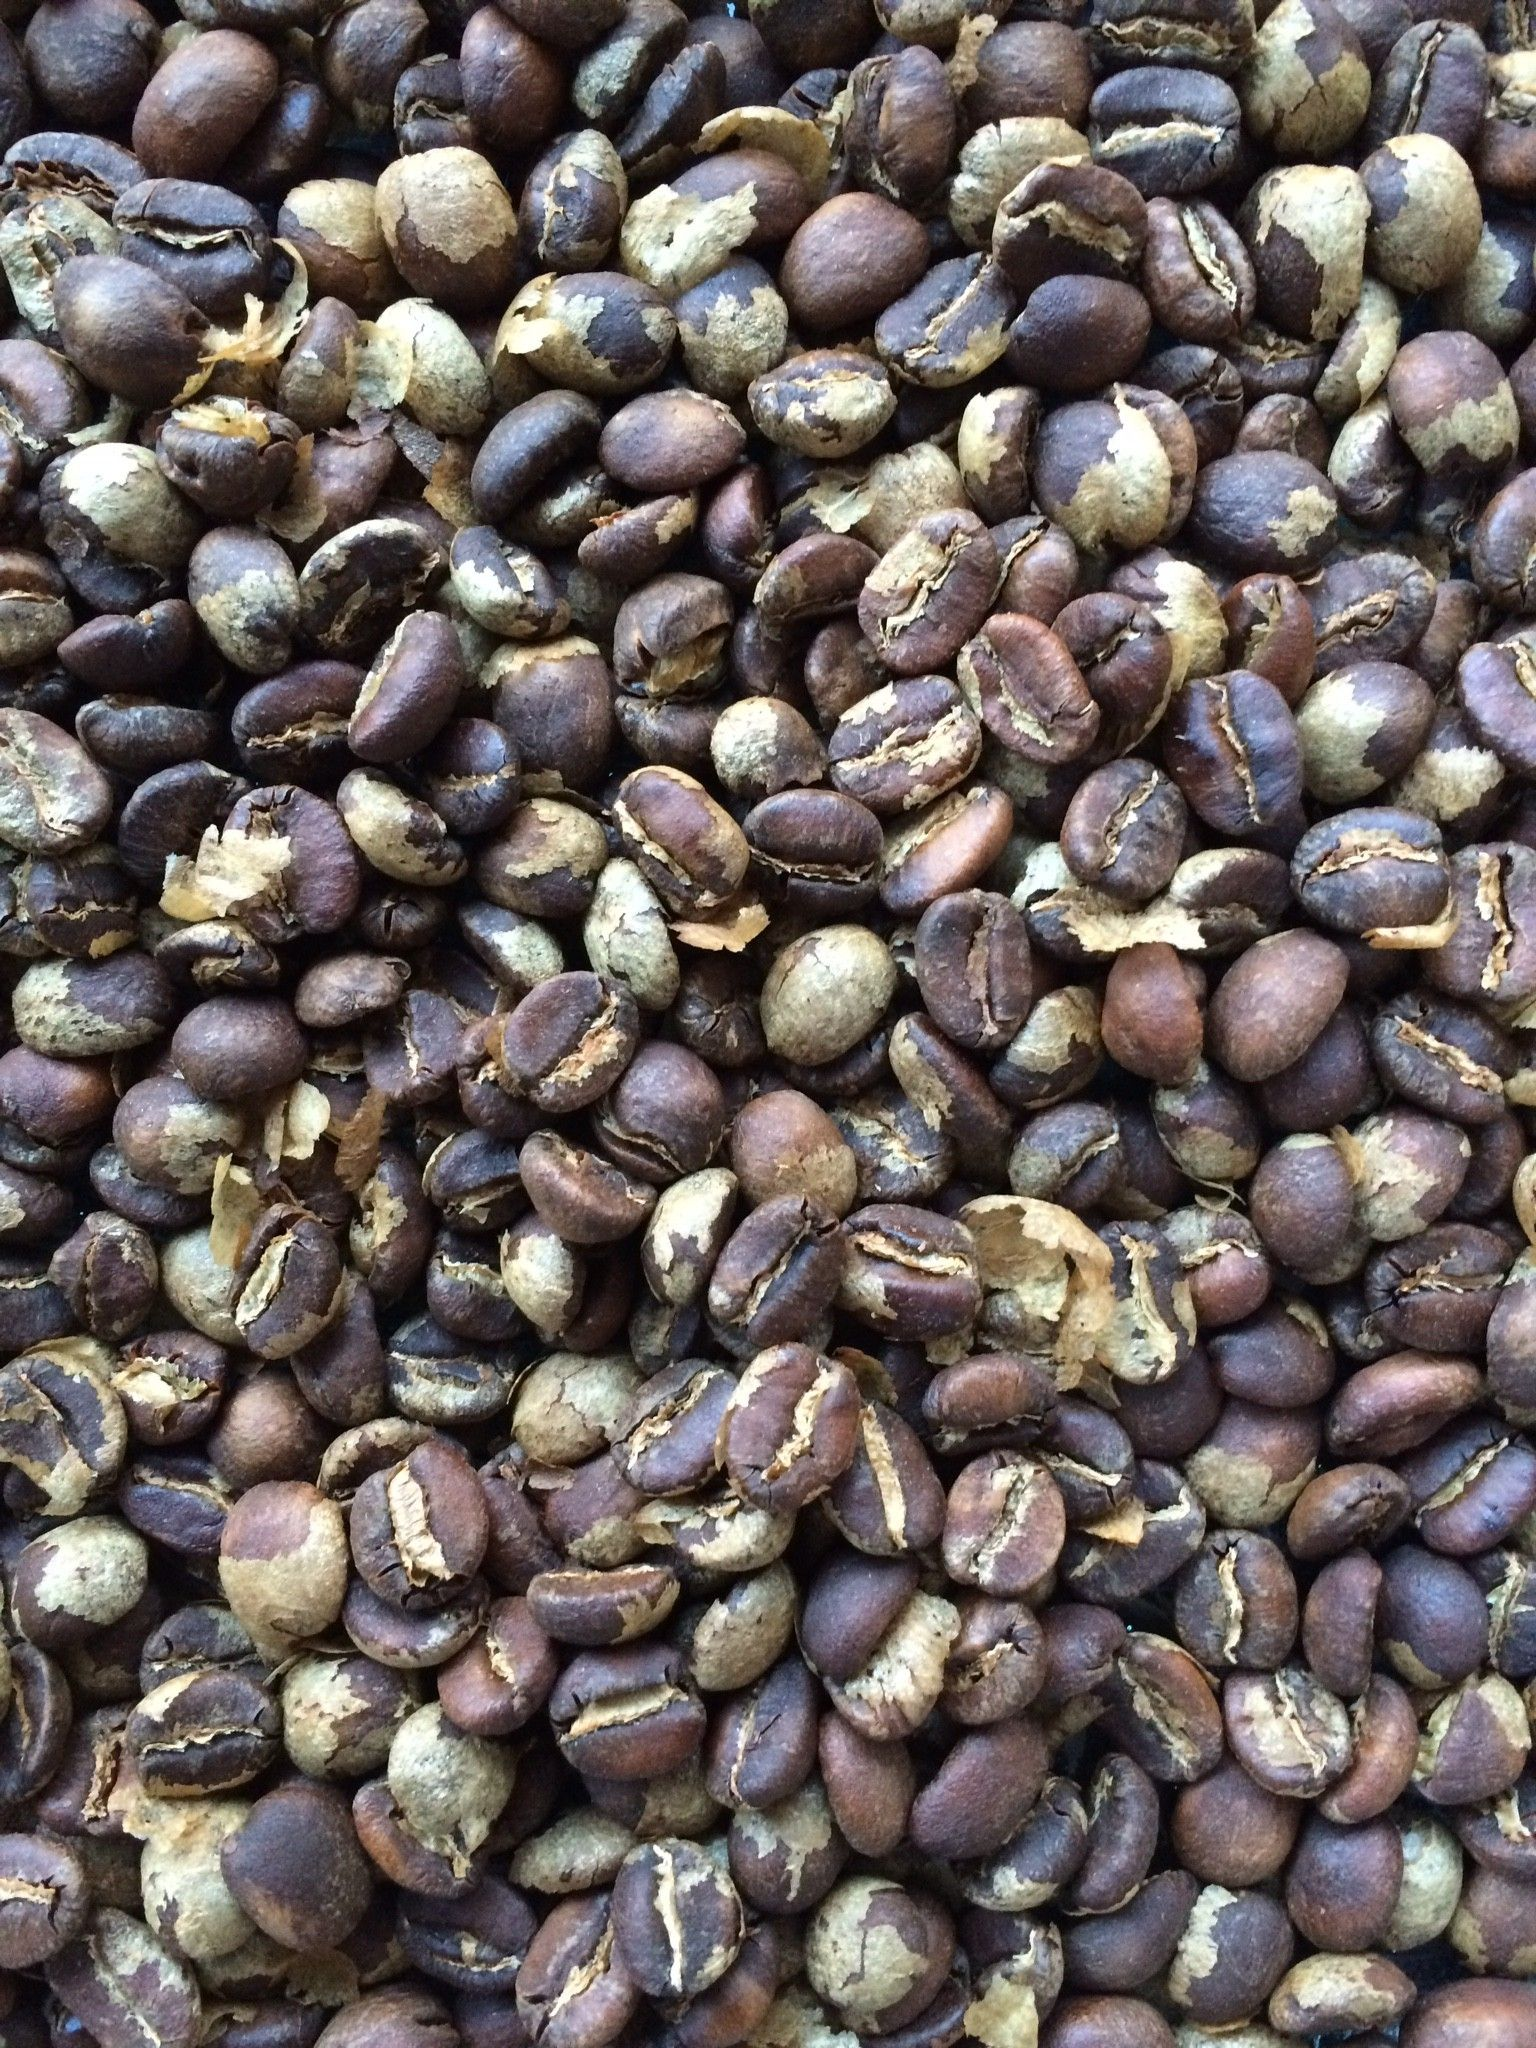 See what coffee beans look like at various stages of